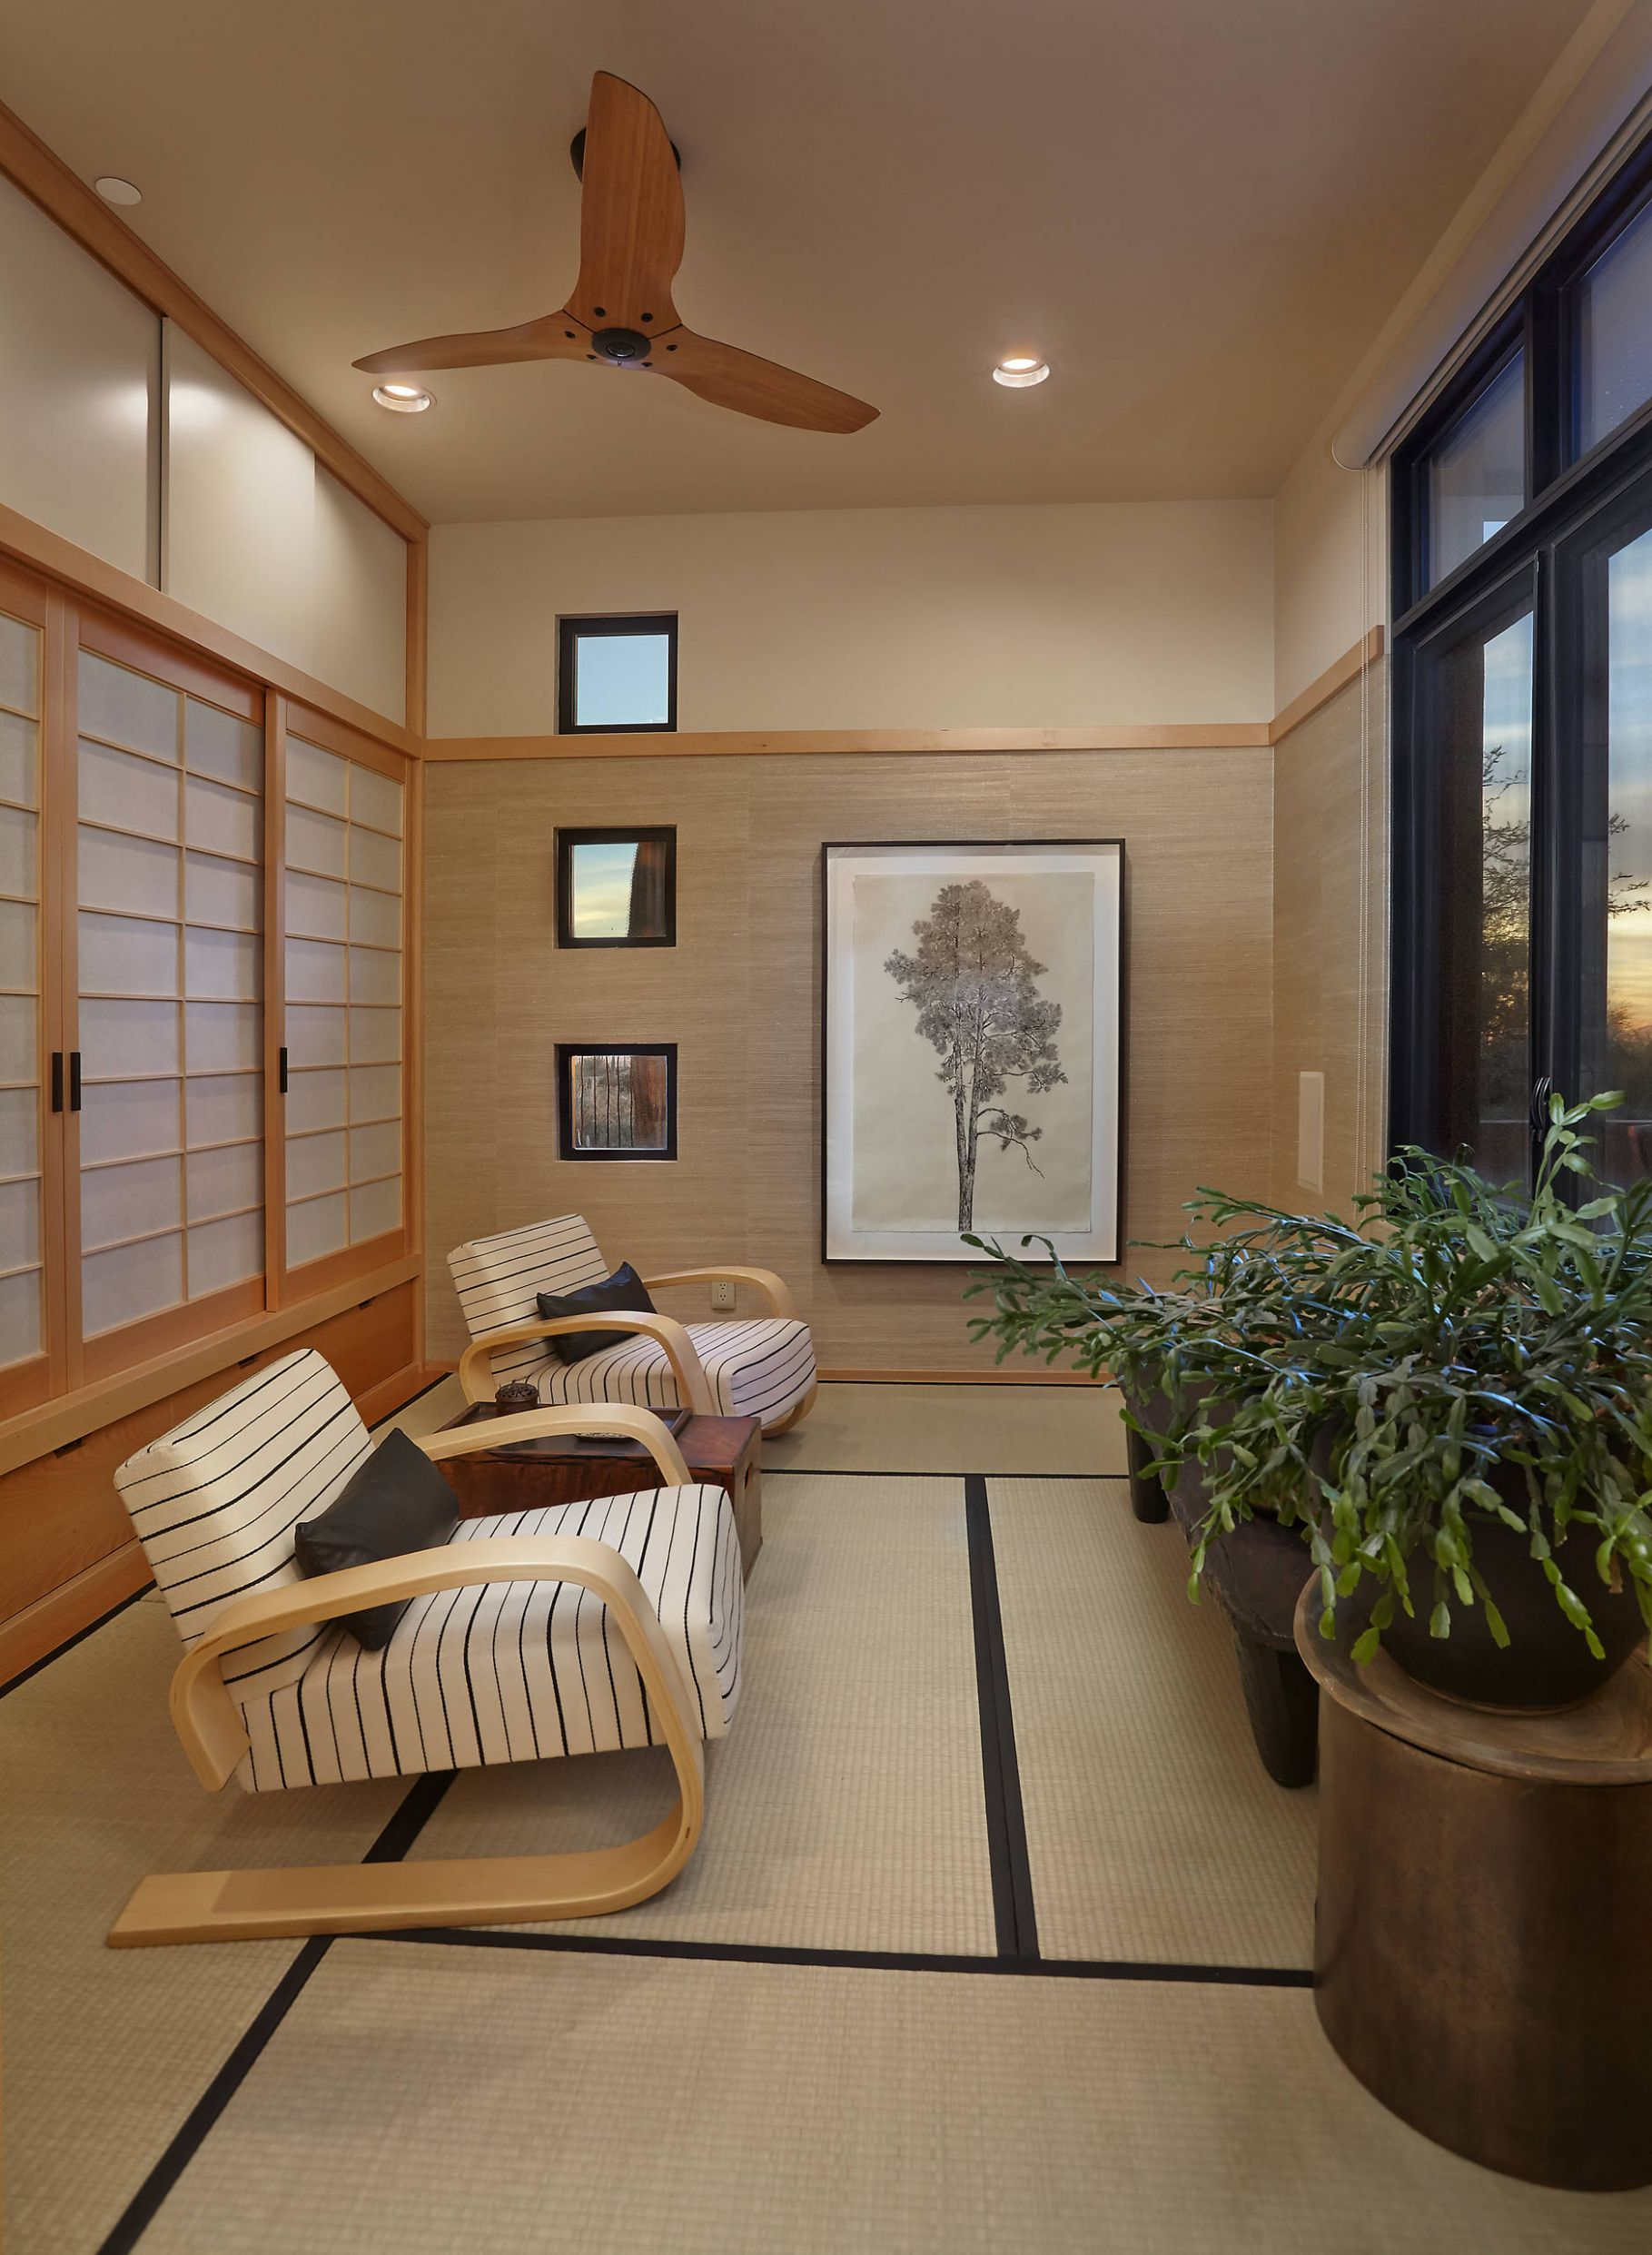 9 Beautiful Small Asian Sunroom Pictures & Ideas | Houzz